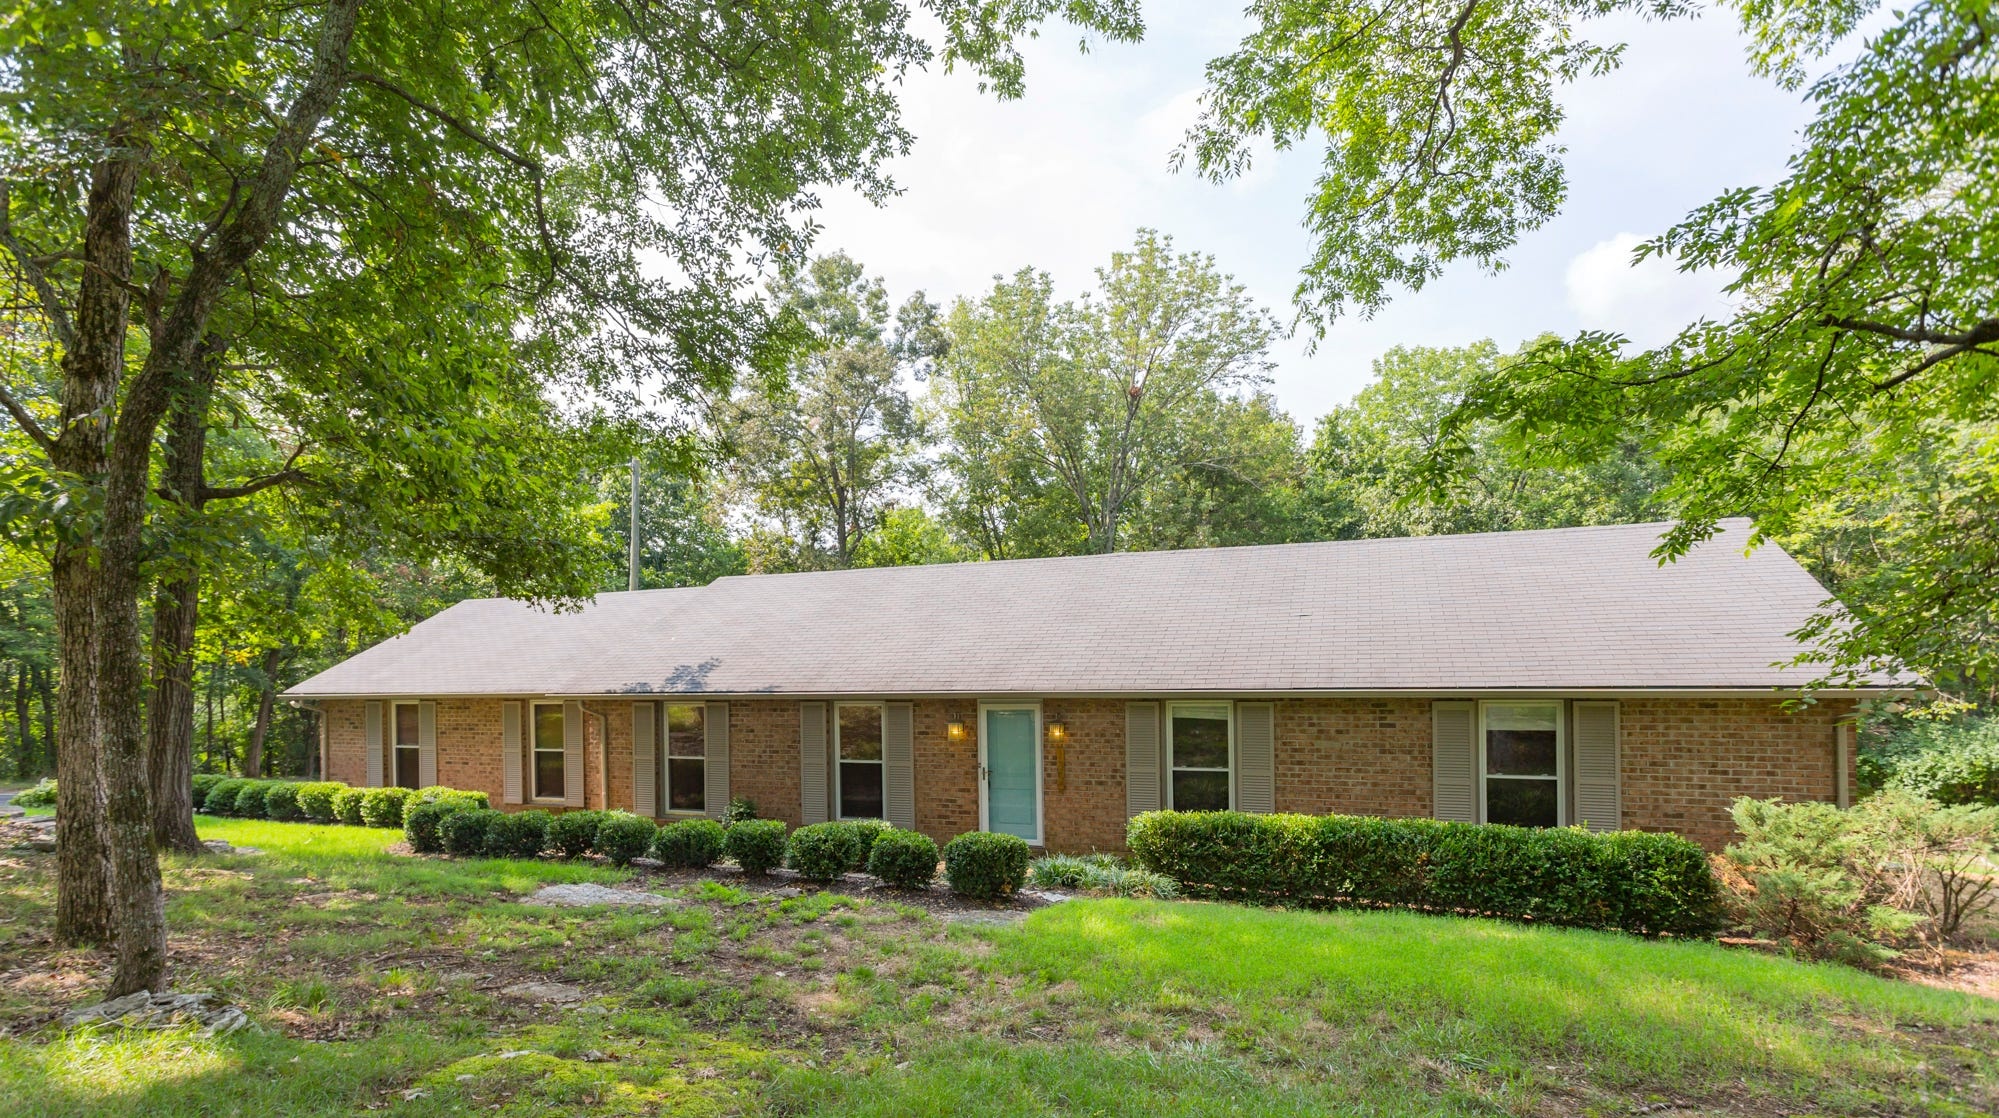 This ranch-style home off Concord Road in Brentwood offers a large yard and clean interior for under $400,000, which isn't common in Williamson County.